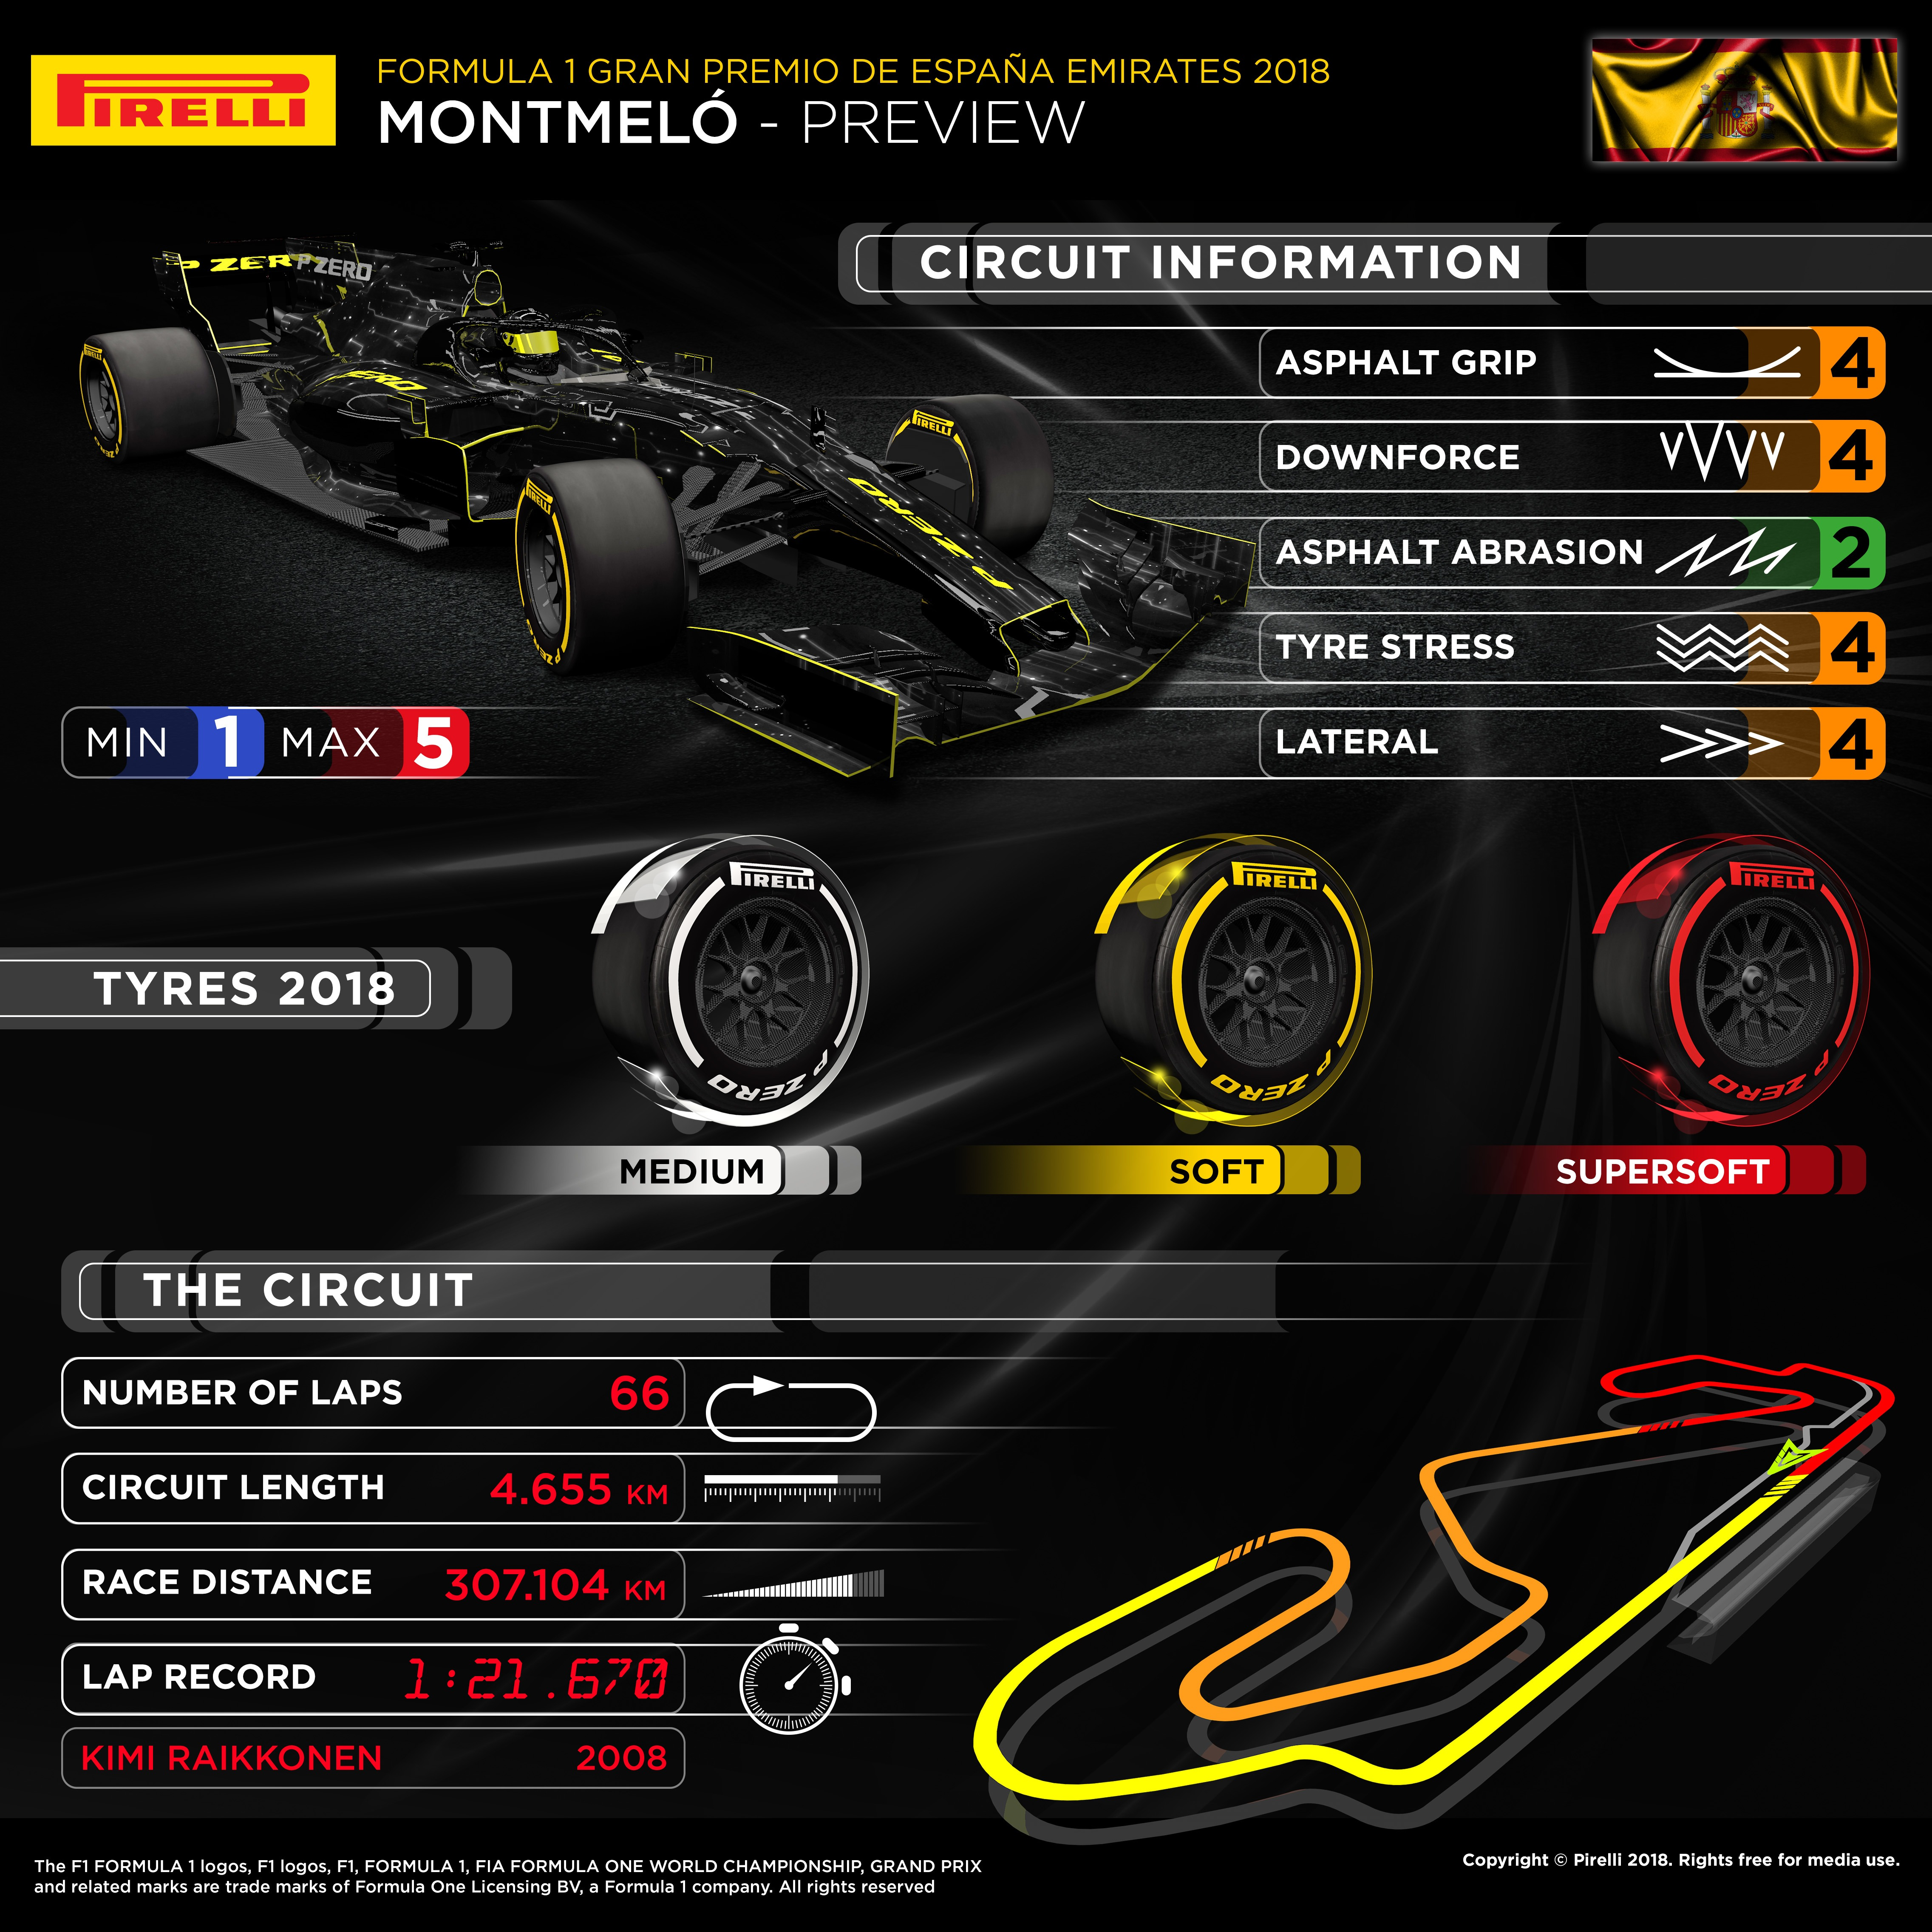 Infographic preview 2018 Spanish F1 GP